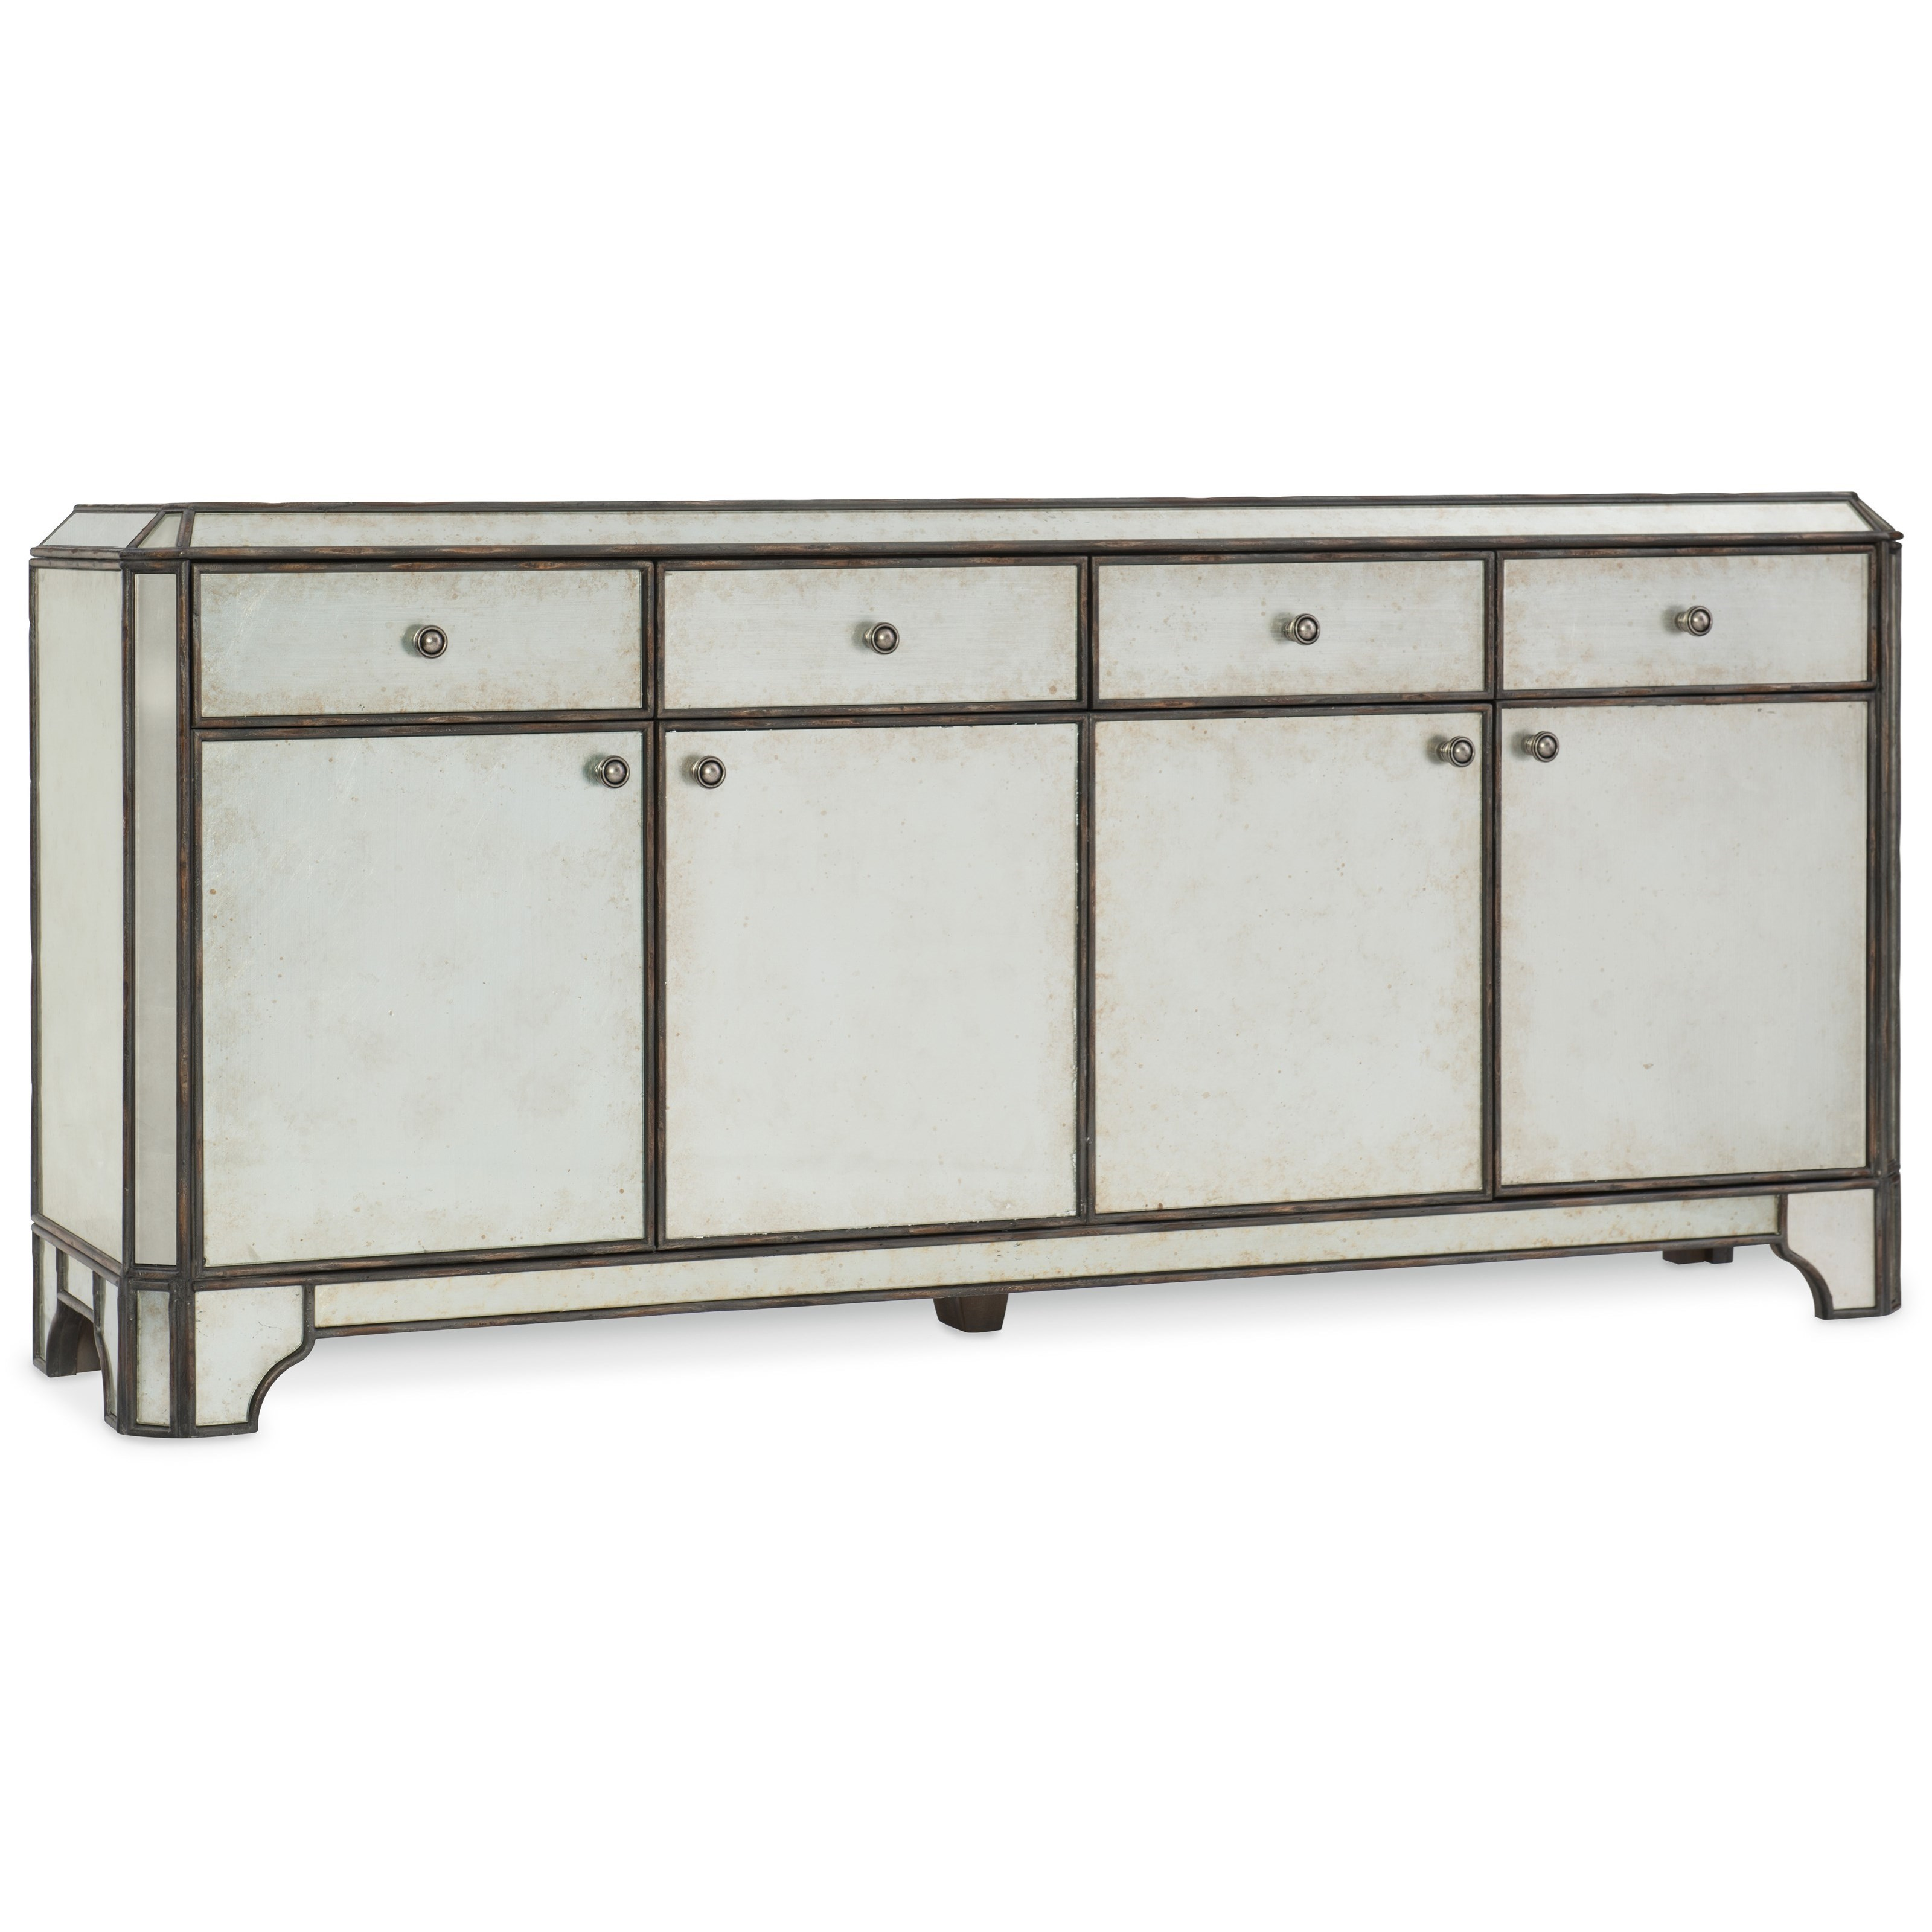 Hooker Furniture Arabella Entertainment Console - Item Number: 1610-55474-EGLO